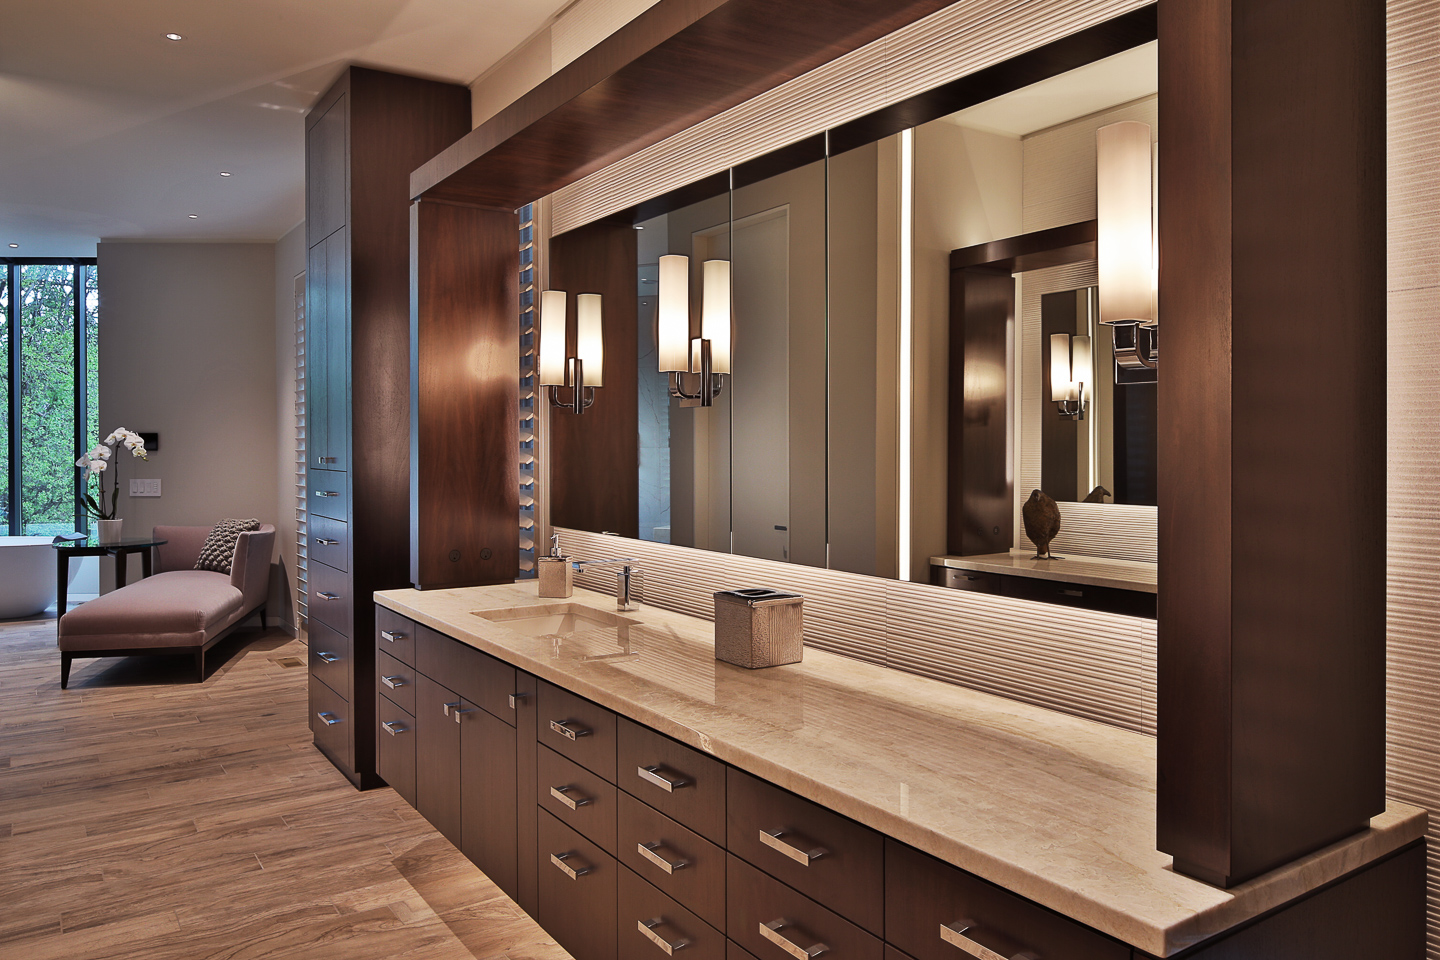 his modern master bath floating vanity featuring dark wood, granite, and polished chrome fixtures, photographed by Jacob Rosenfeld